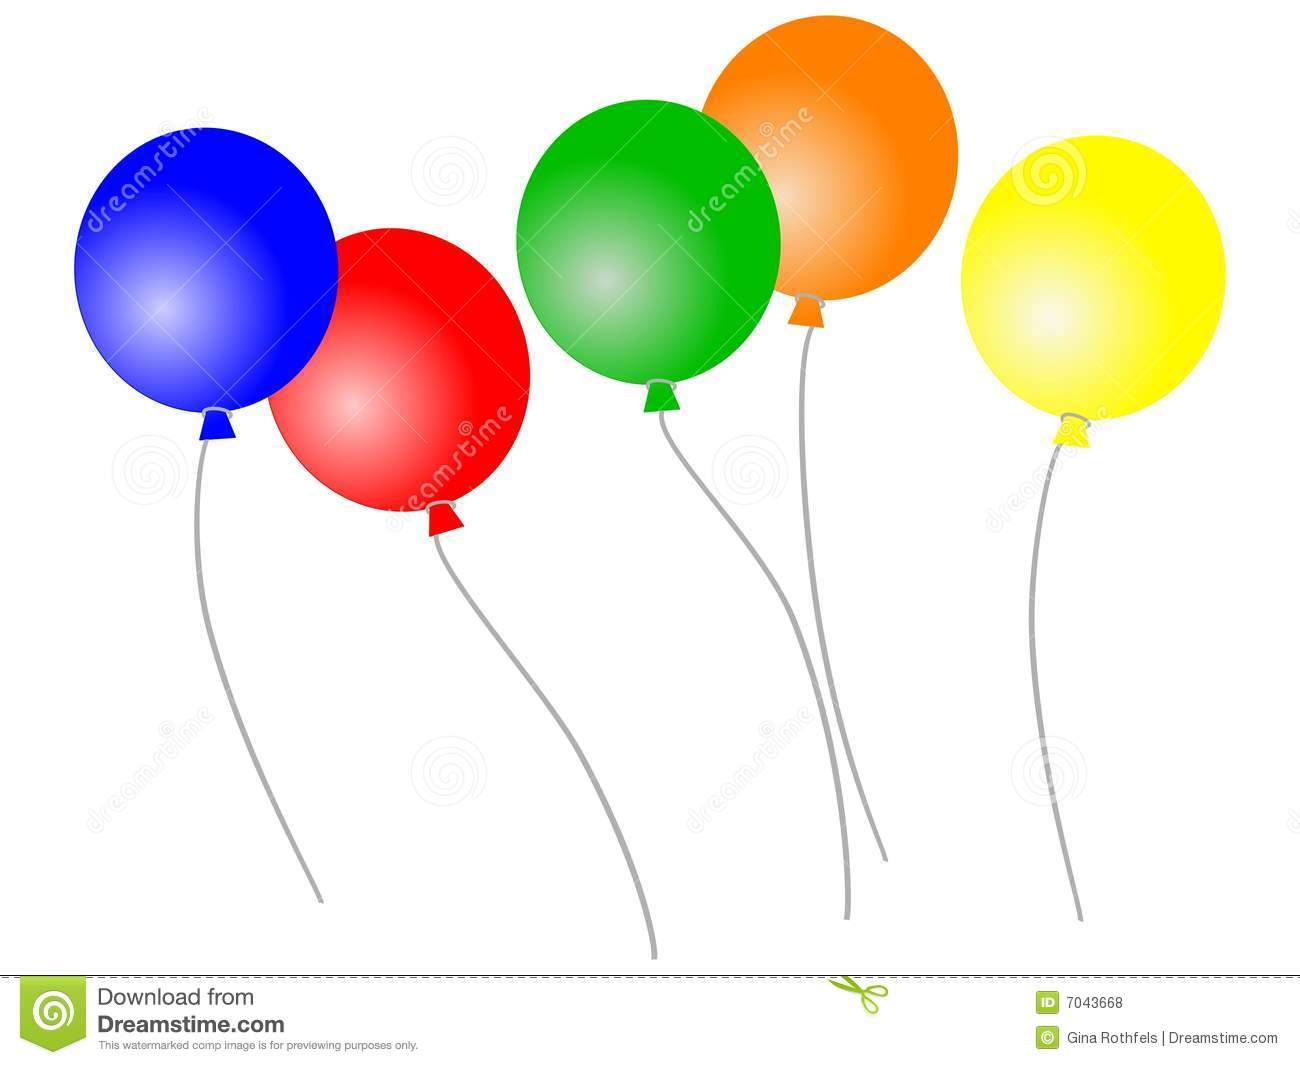 Loose balloons royalty free stock photos image 7043668